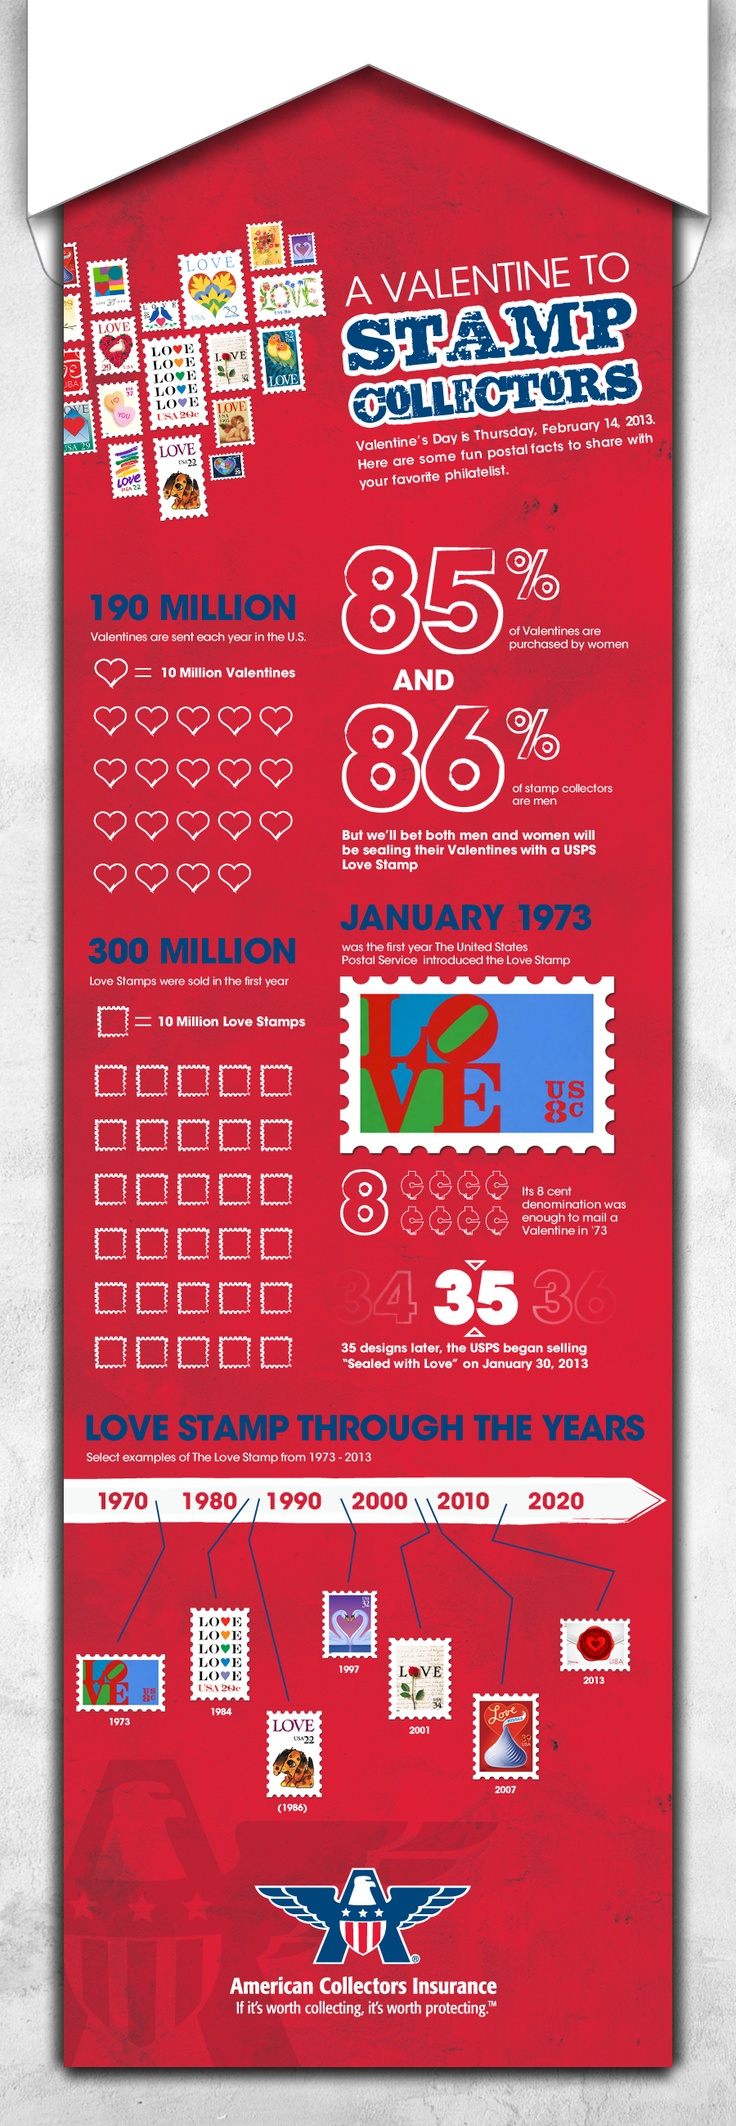 facts about valentine day in mexico